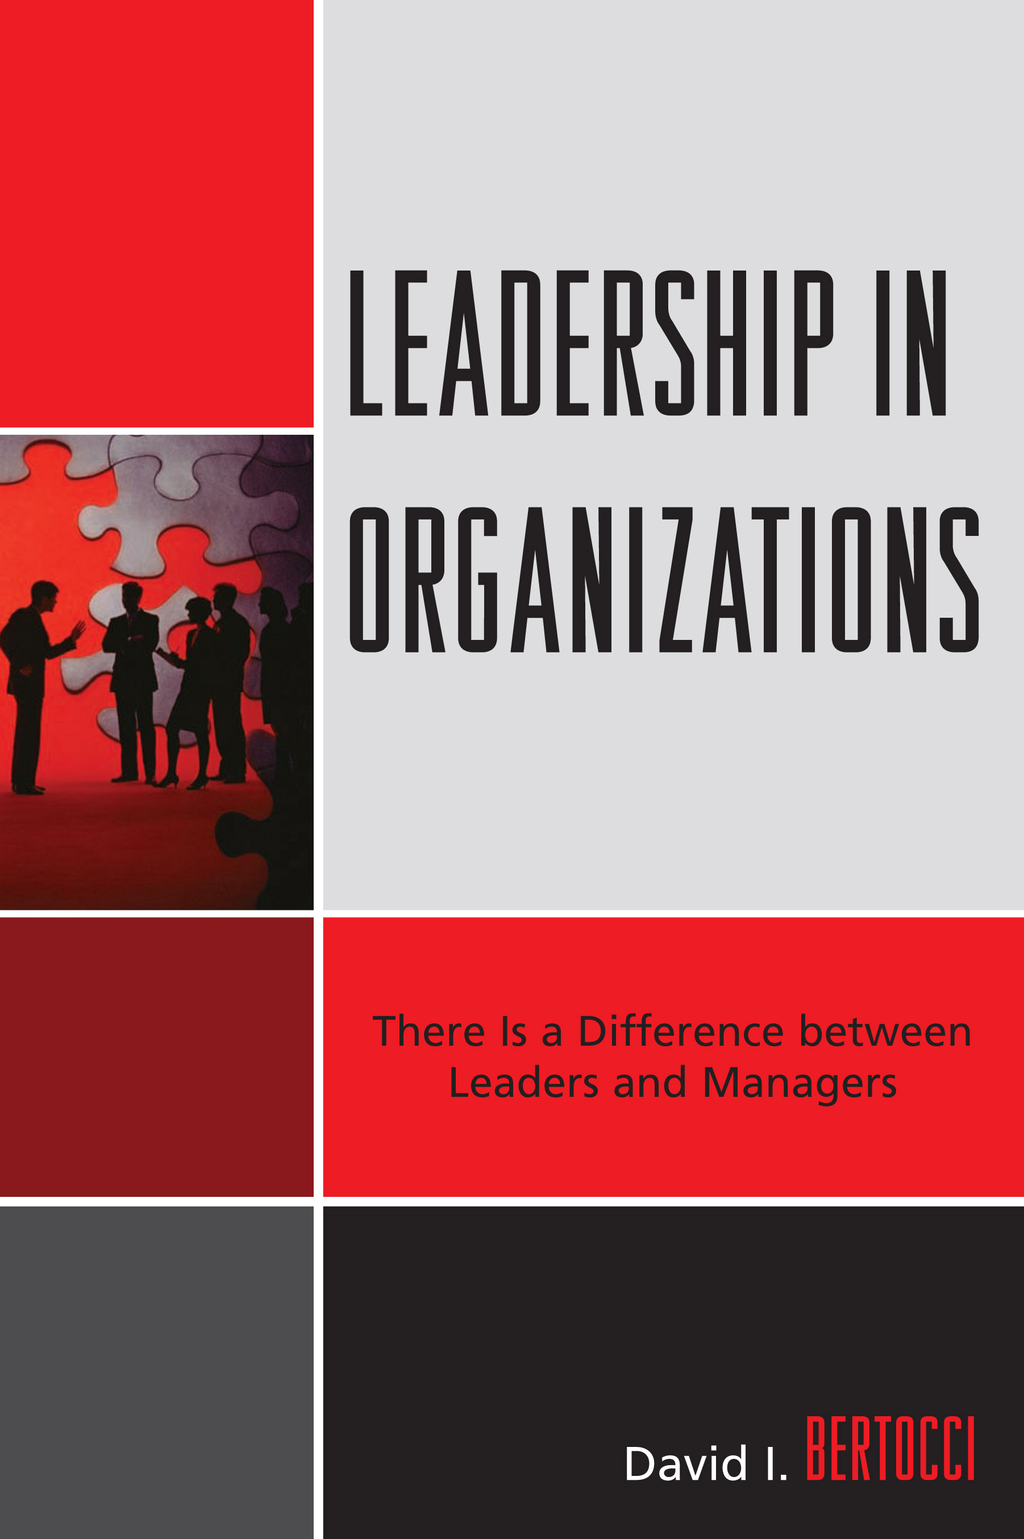 Leadership in Organizations By: David I. Bertocci